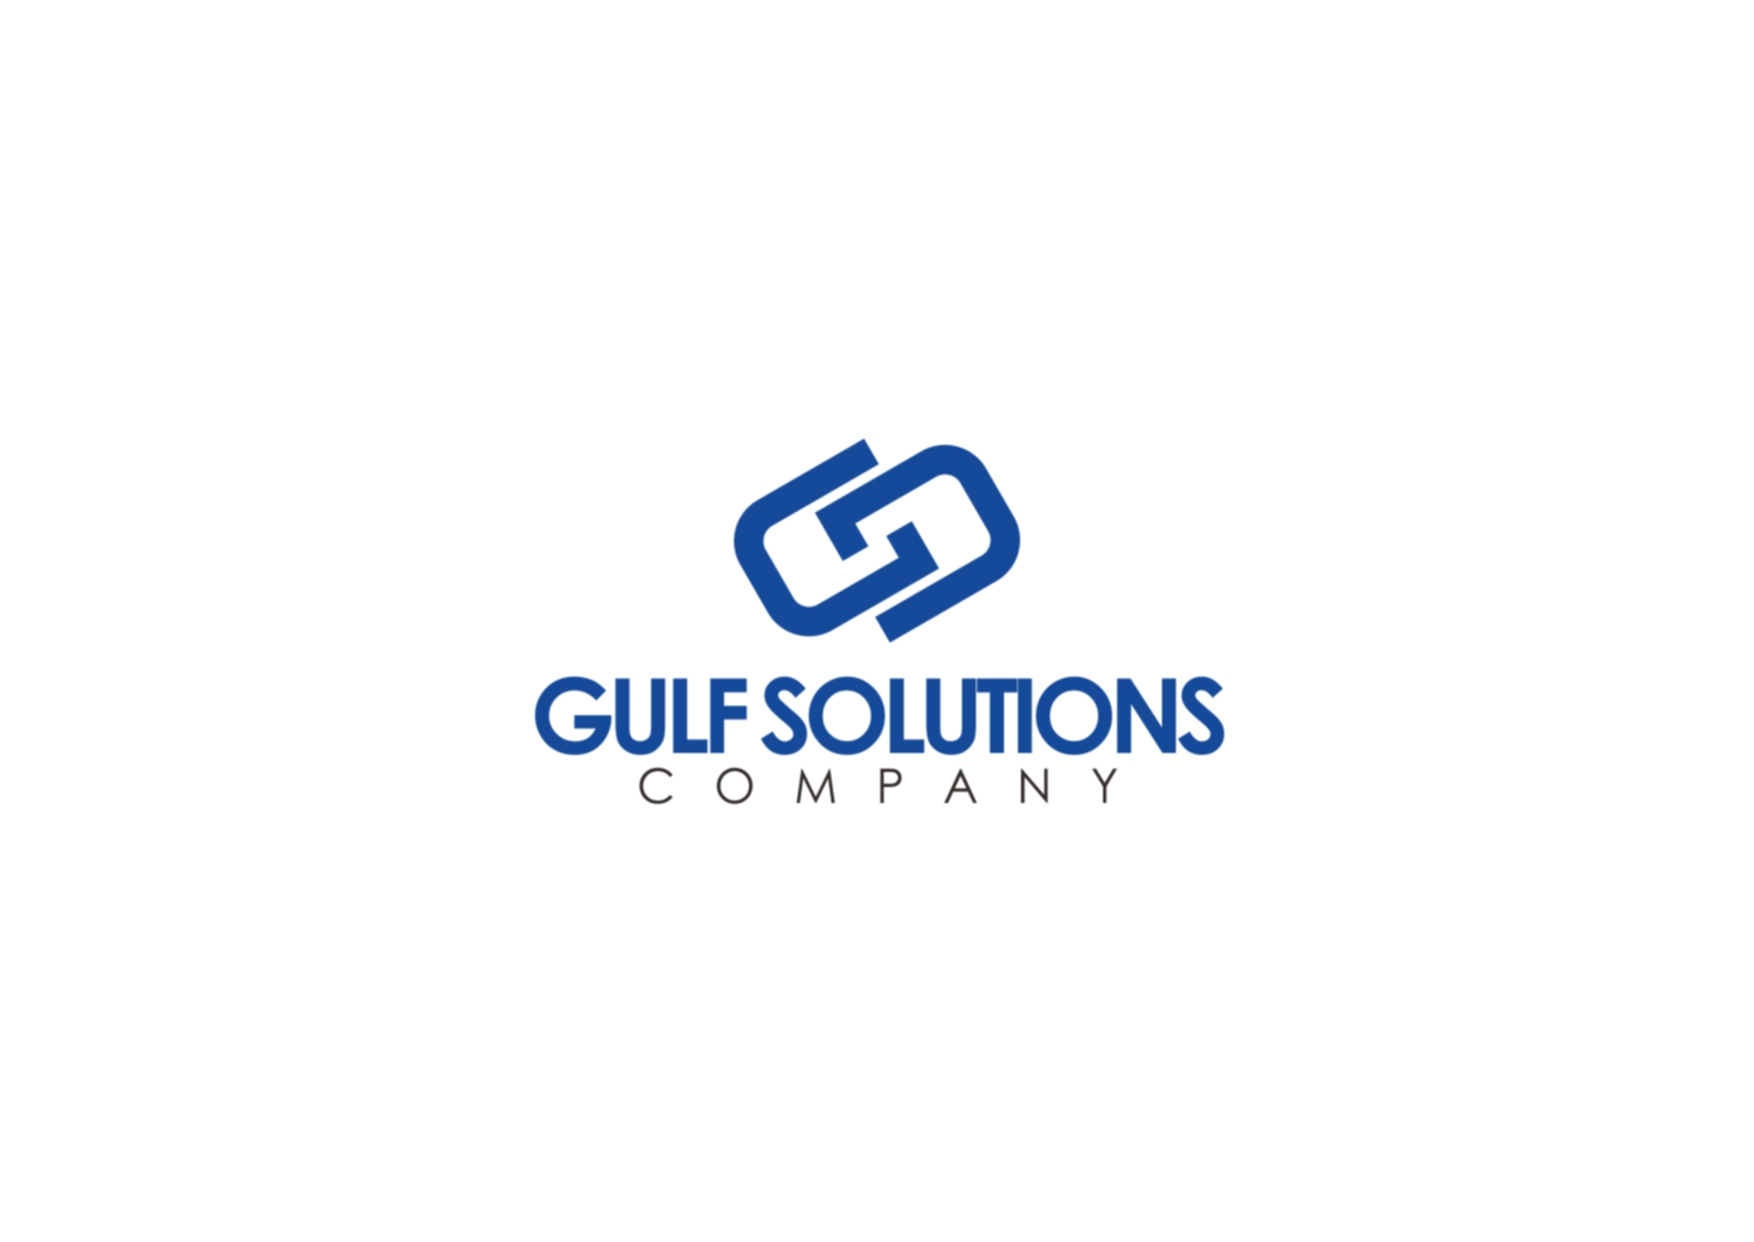 Logo Design by Private User - Entry No. 76 in the Logo Design Contest New Logo Design for Gulf solutions company.